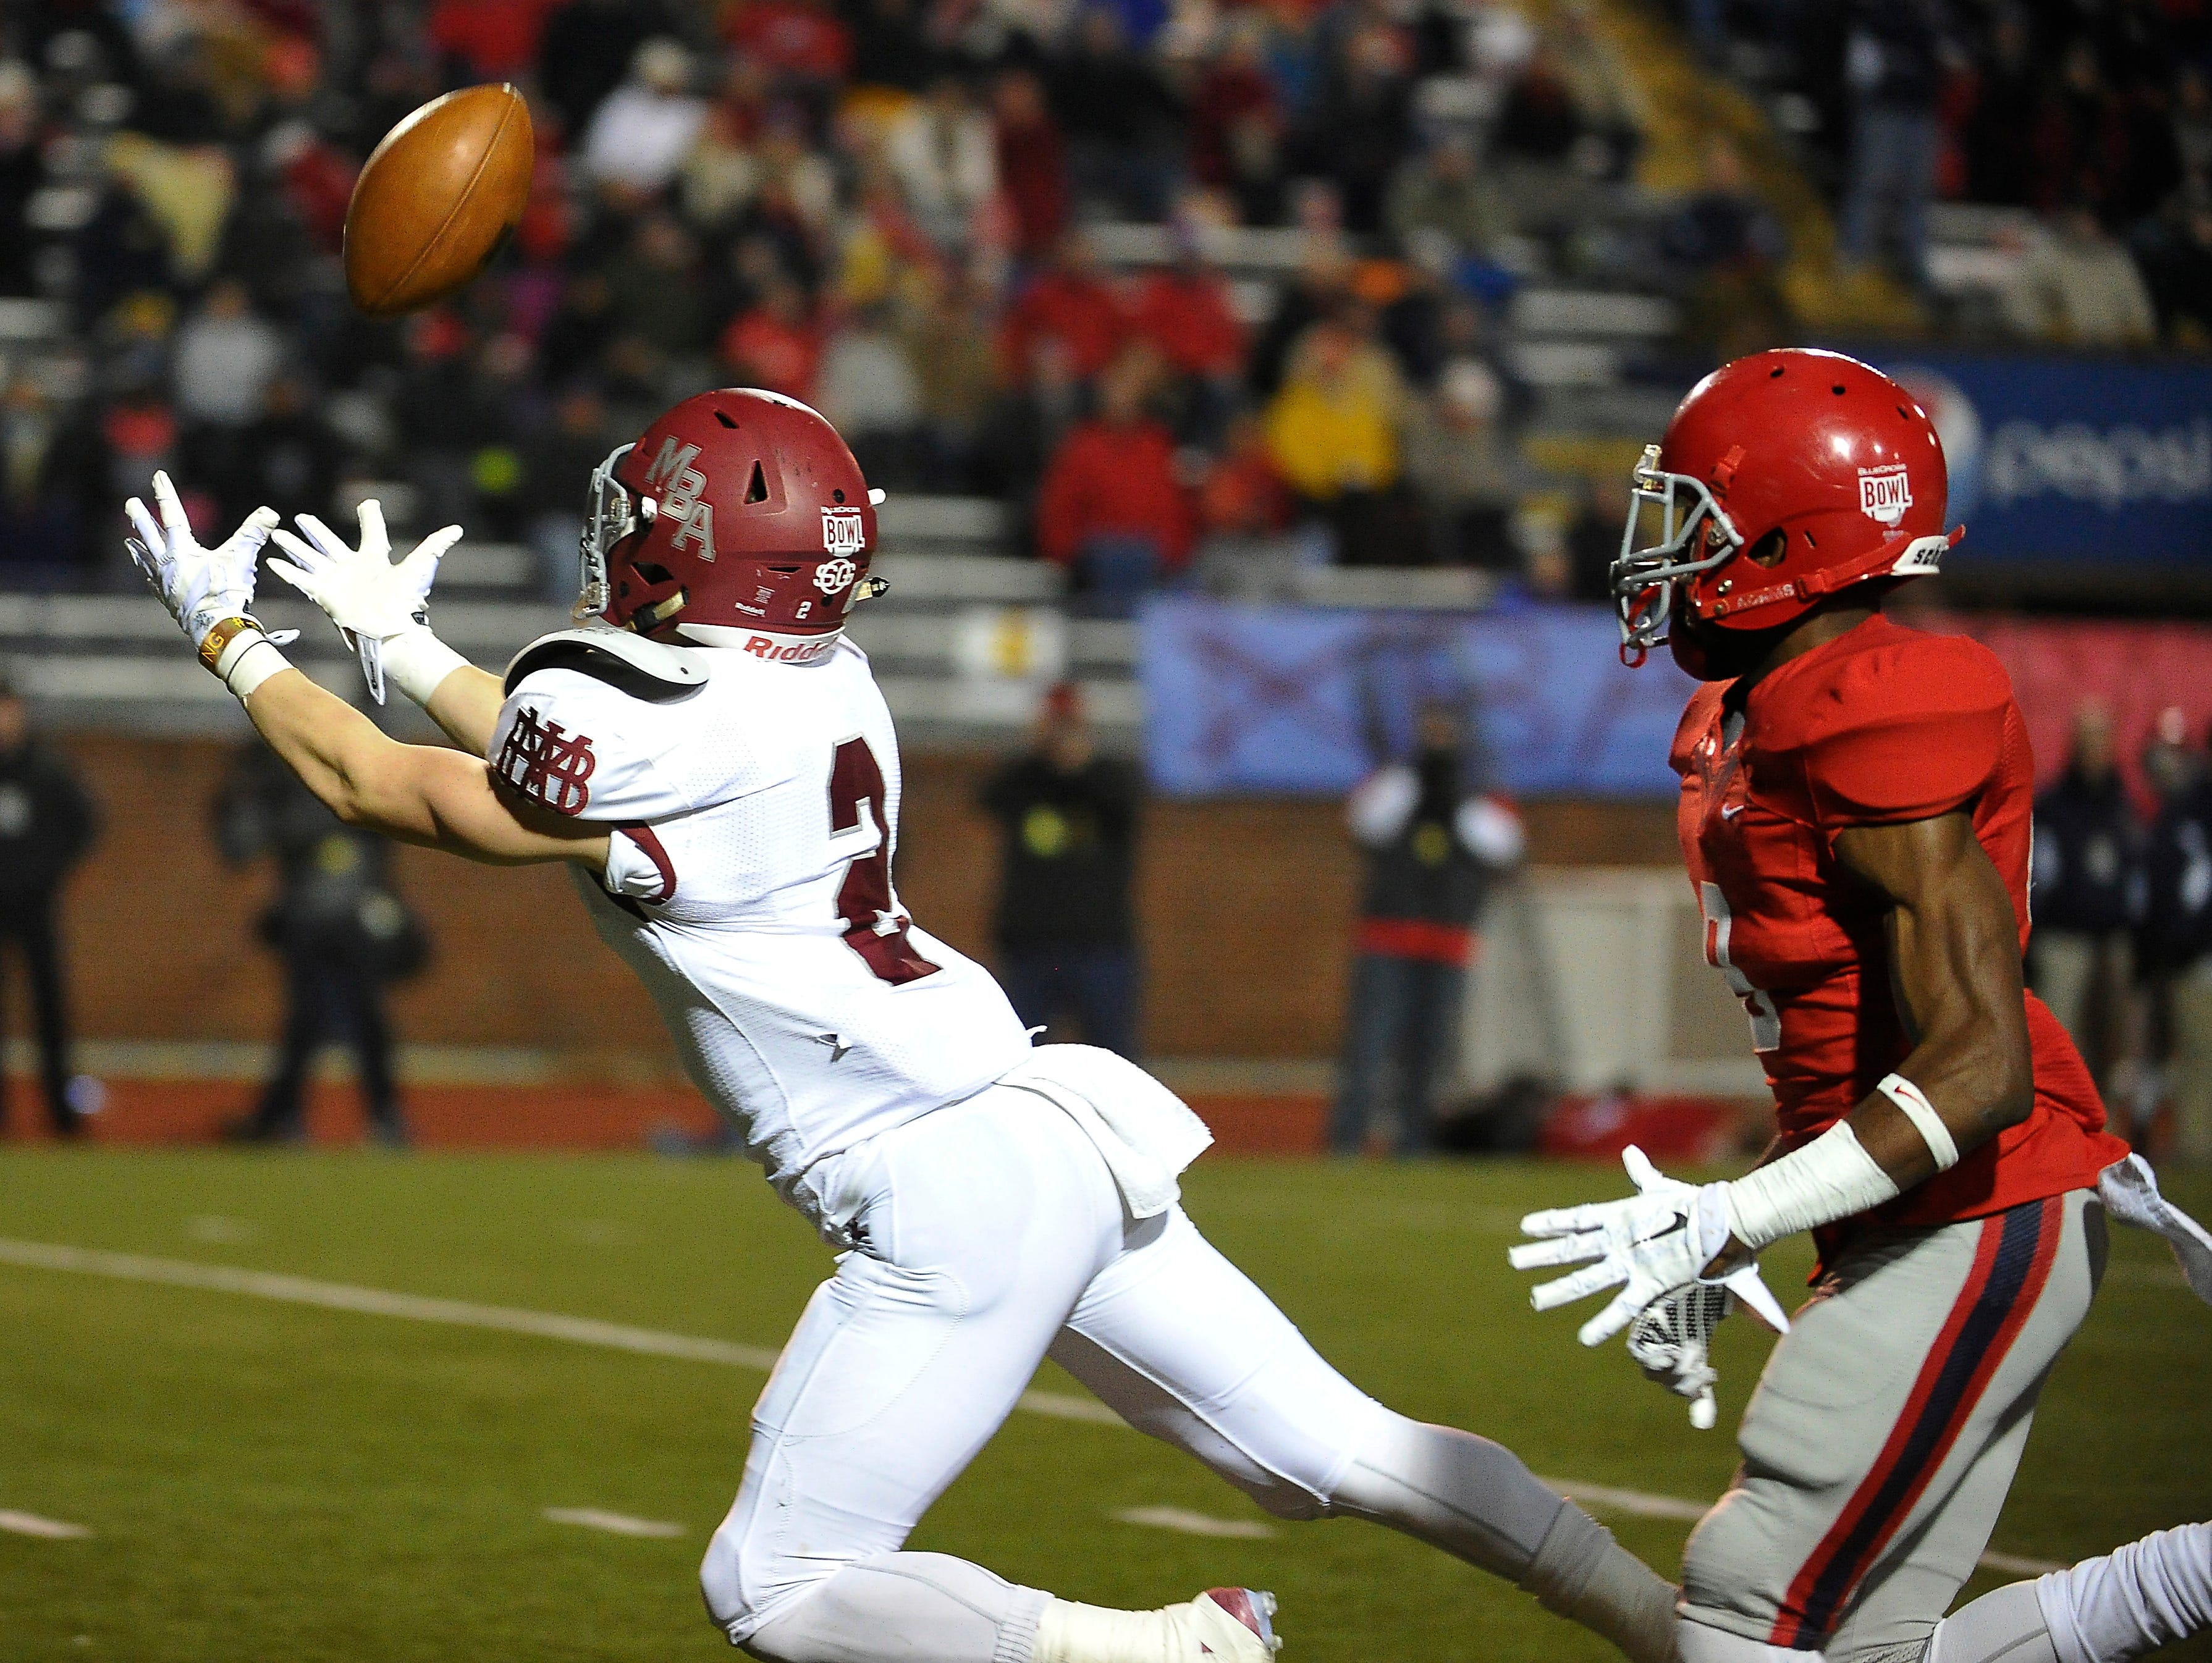 Montgomery Bell Academy's Montgomery Owen brings in a pass against Brentwood Academy in the BlueCross Bowl DII-AA state title game on Dec. 3, 2015, in Cookeville.